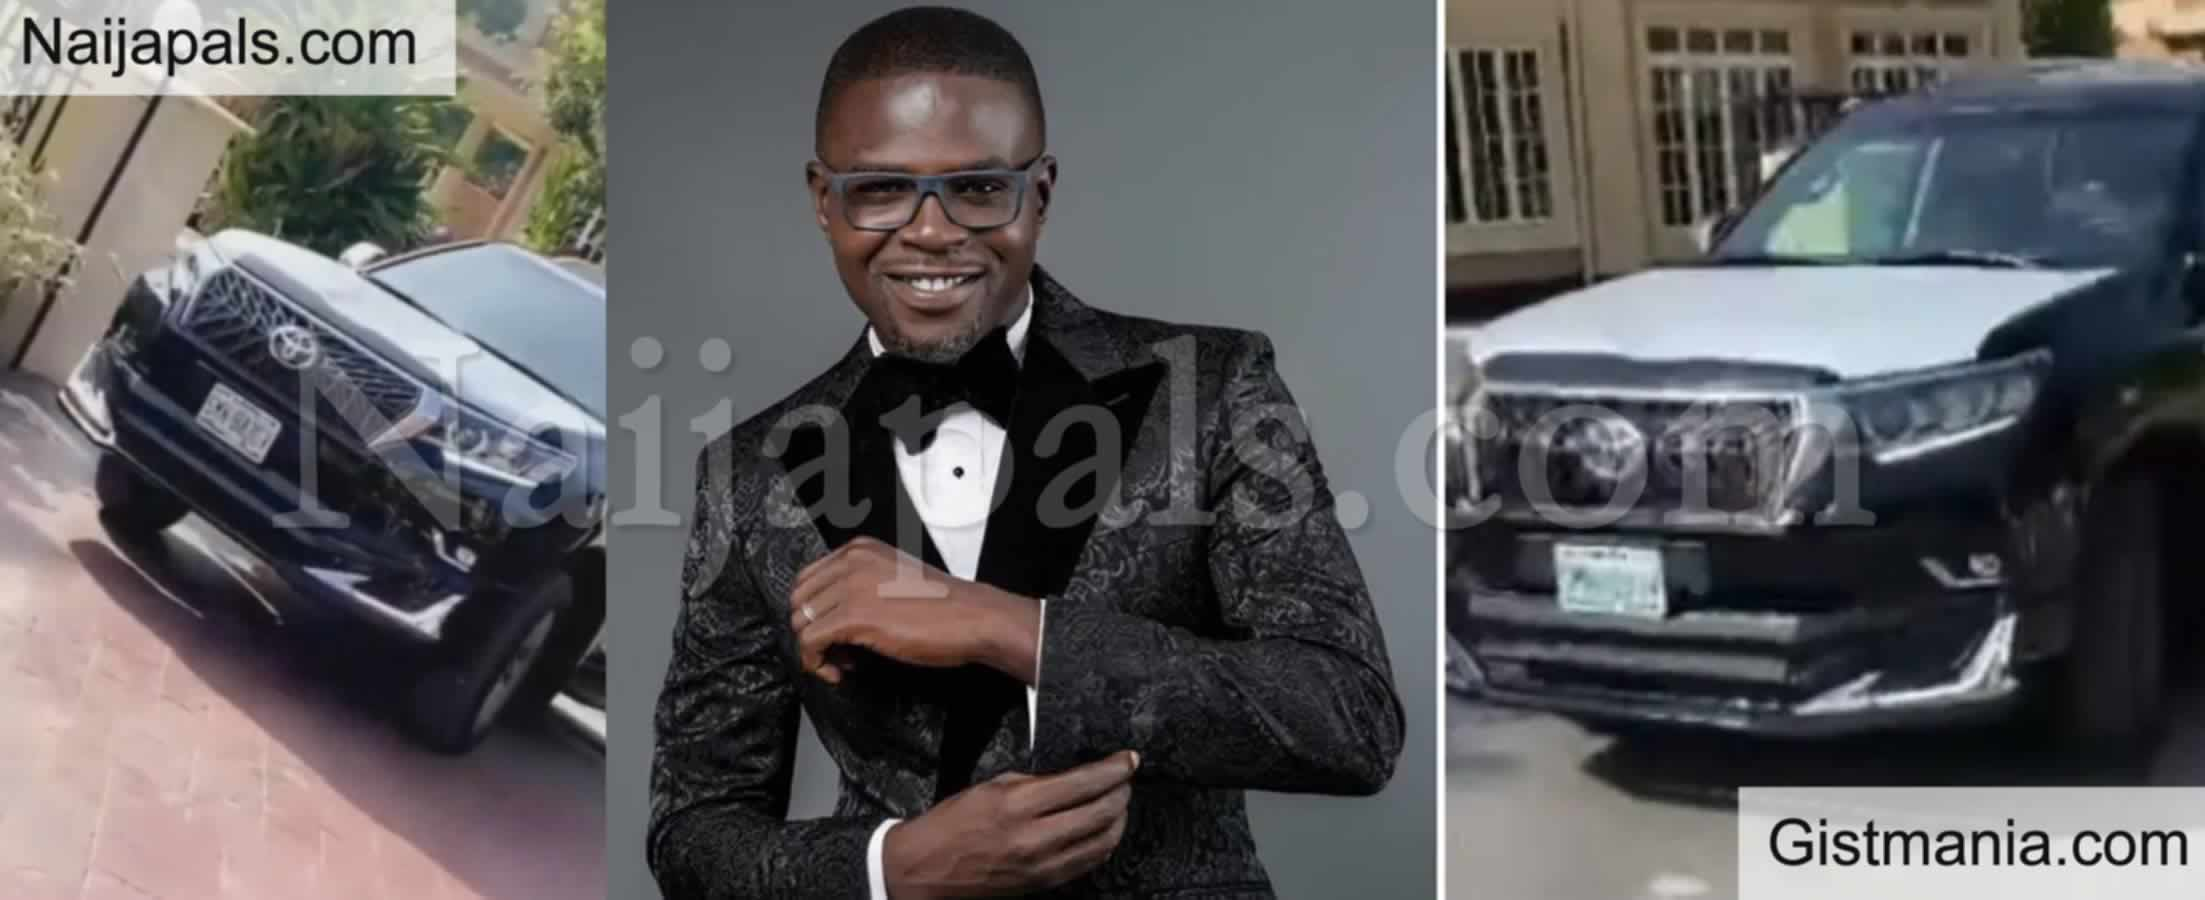 <img alt='.' class='lazyload' data-src='https://img.gistmania.com/emot/thumbs_up.gif' /> Nigerian Rapper <b>JJC Acquires Brand New SUV</b> (PHOTO)